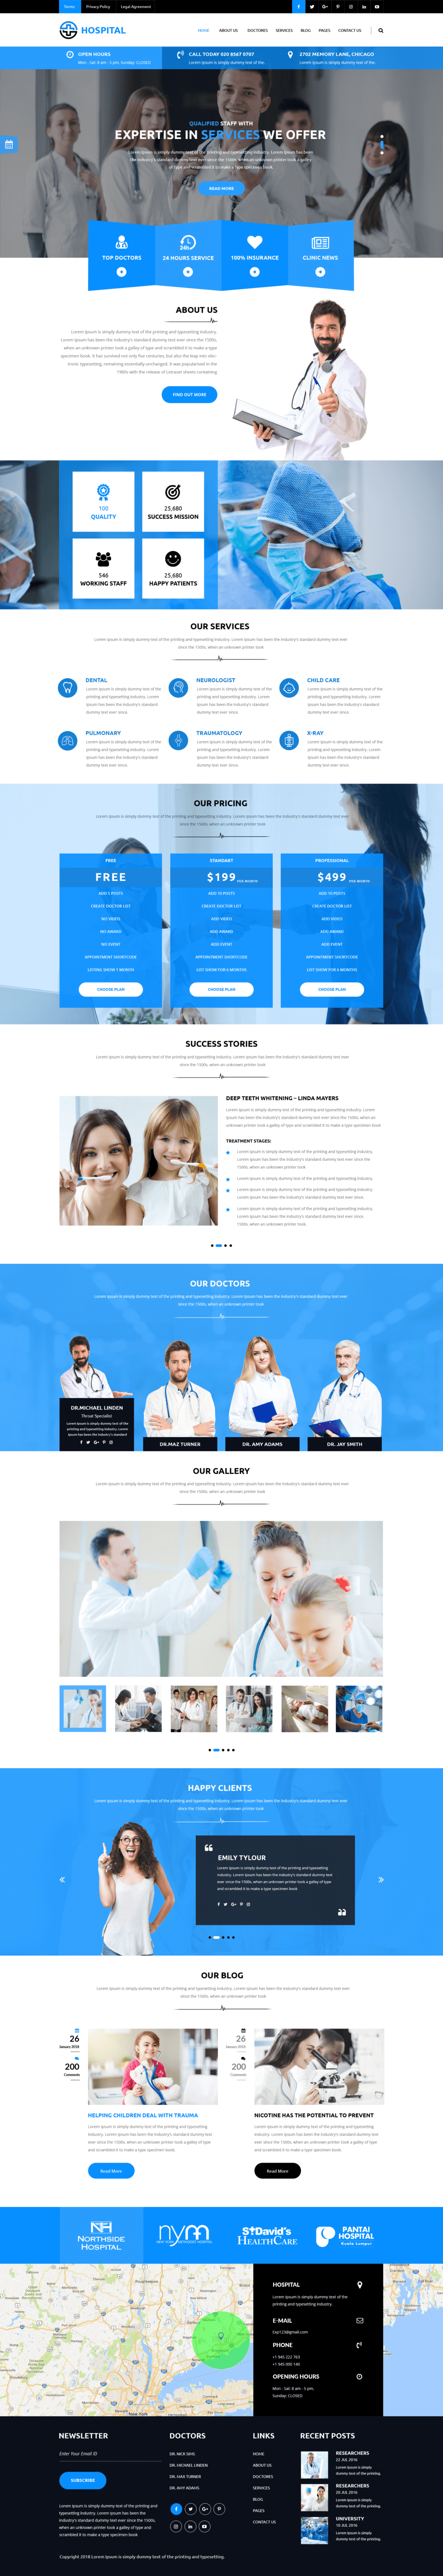 Premium Medical WordPress Theme